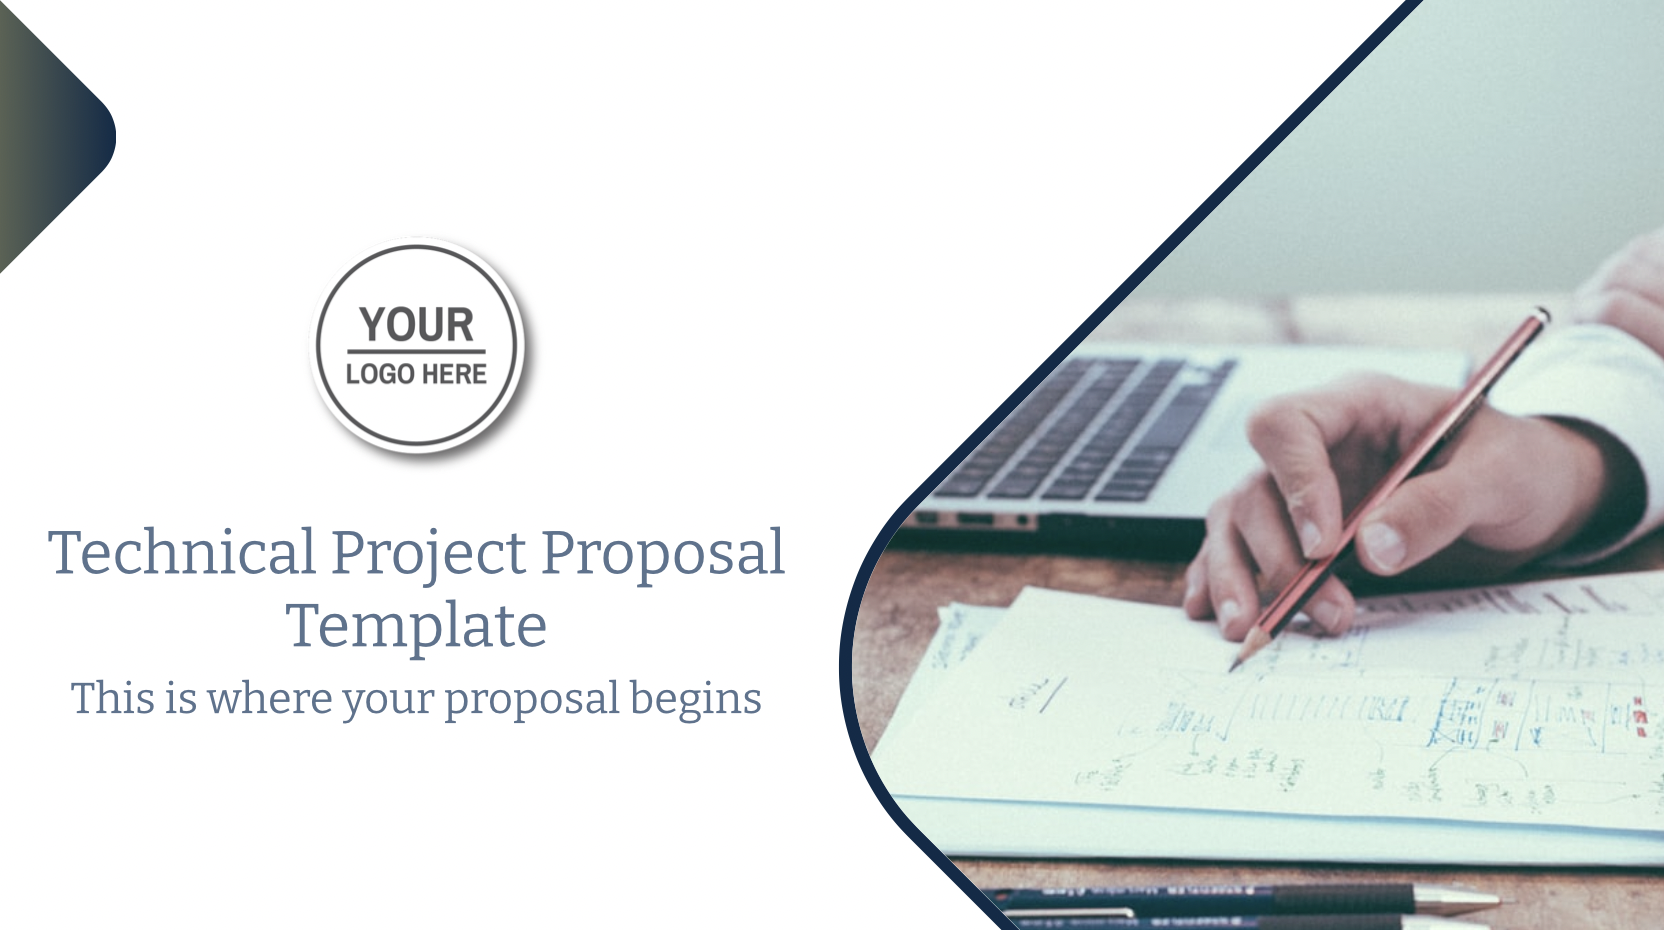 You can strengthen the professional relationship you've fostered between particular contributors and an organization by submitting a project proposal. The proposal establishes a framework for the project domain, clarifies the objectives, and lays out your plans and forecasts for how they will be met.